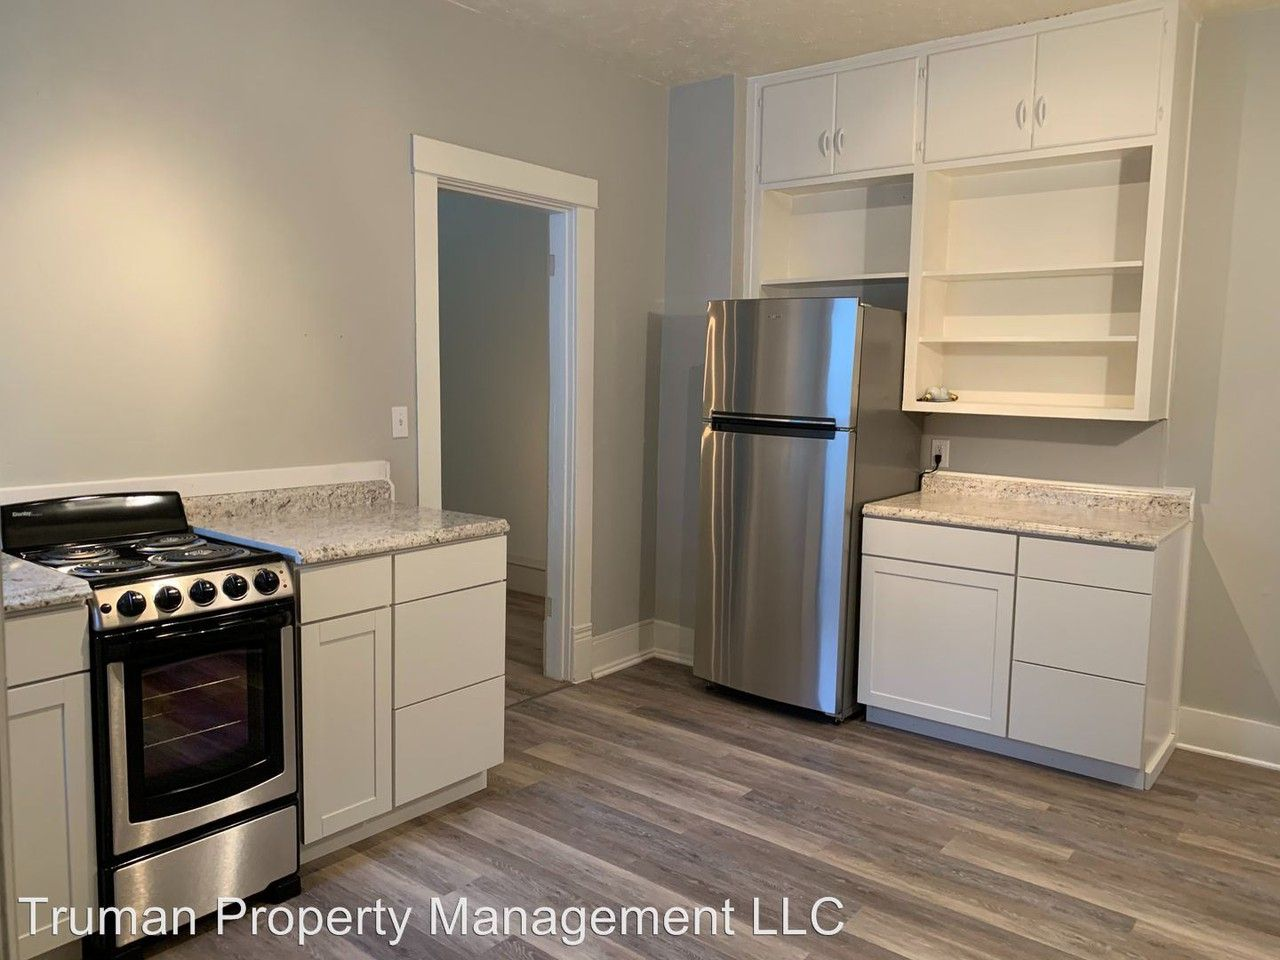 315 Kalispell Ave Apartments For Rent In Whitefish Mt